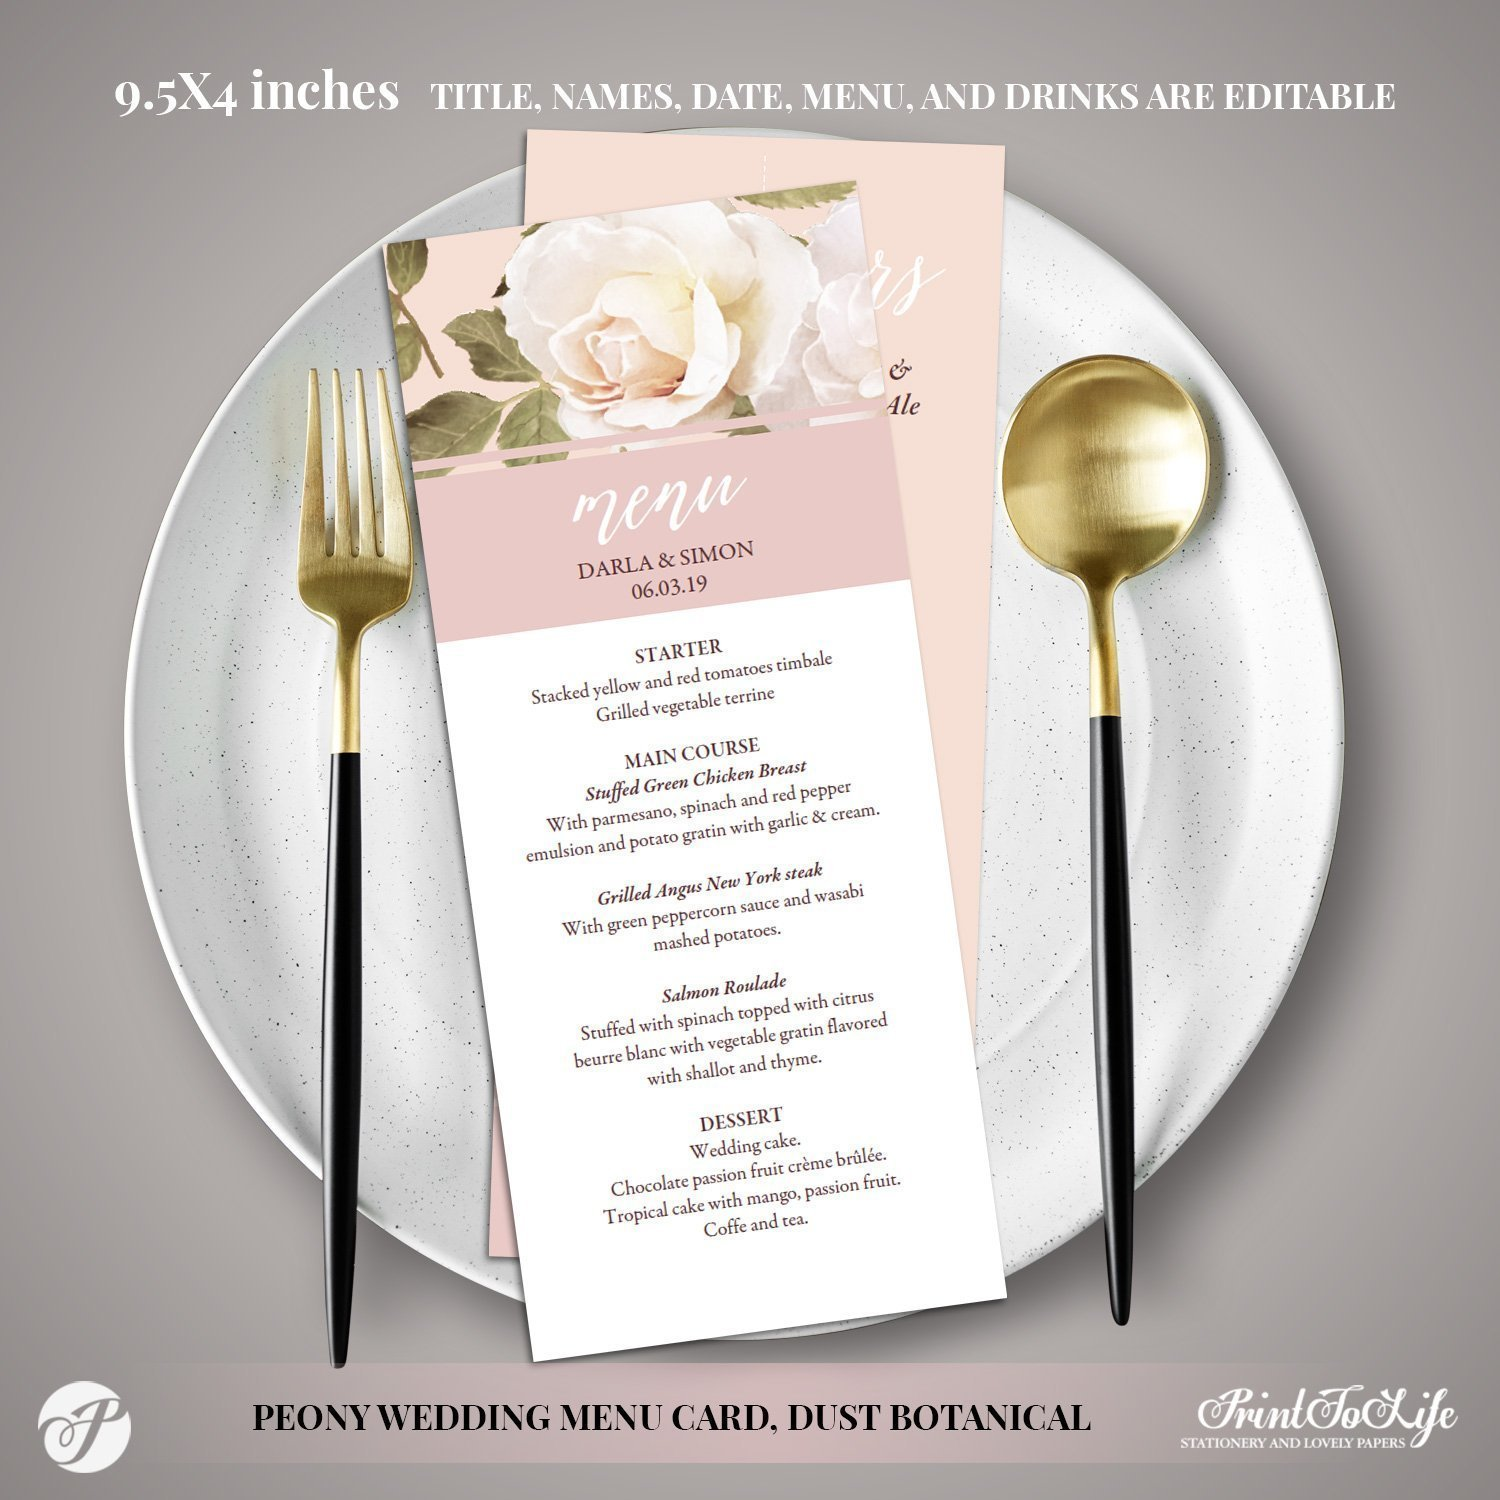 Peony Wedding Menu Template by Printolife